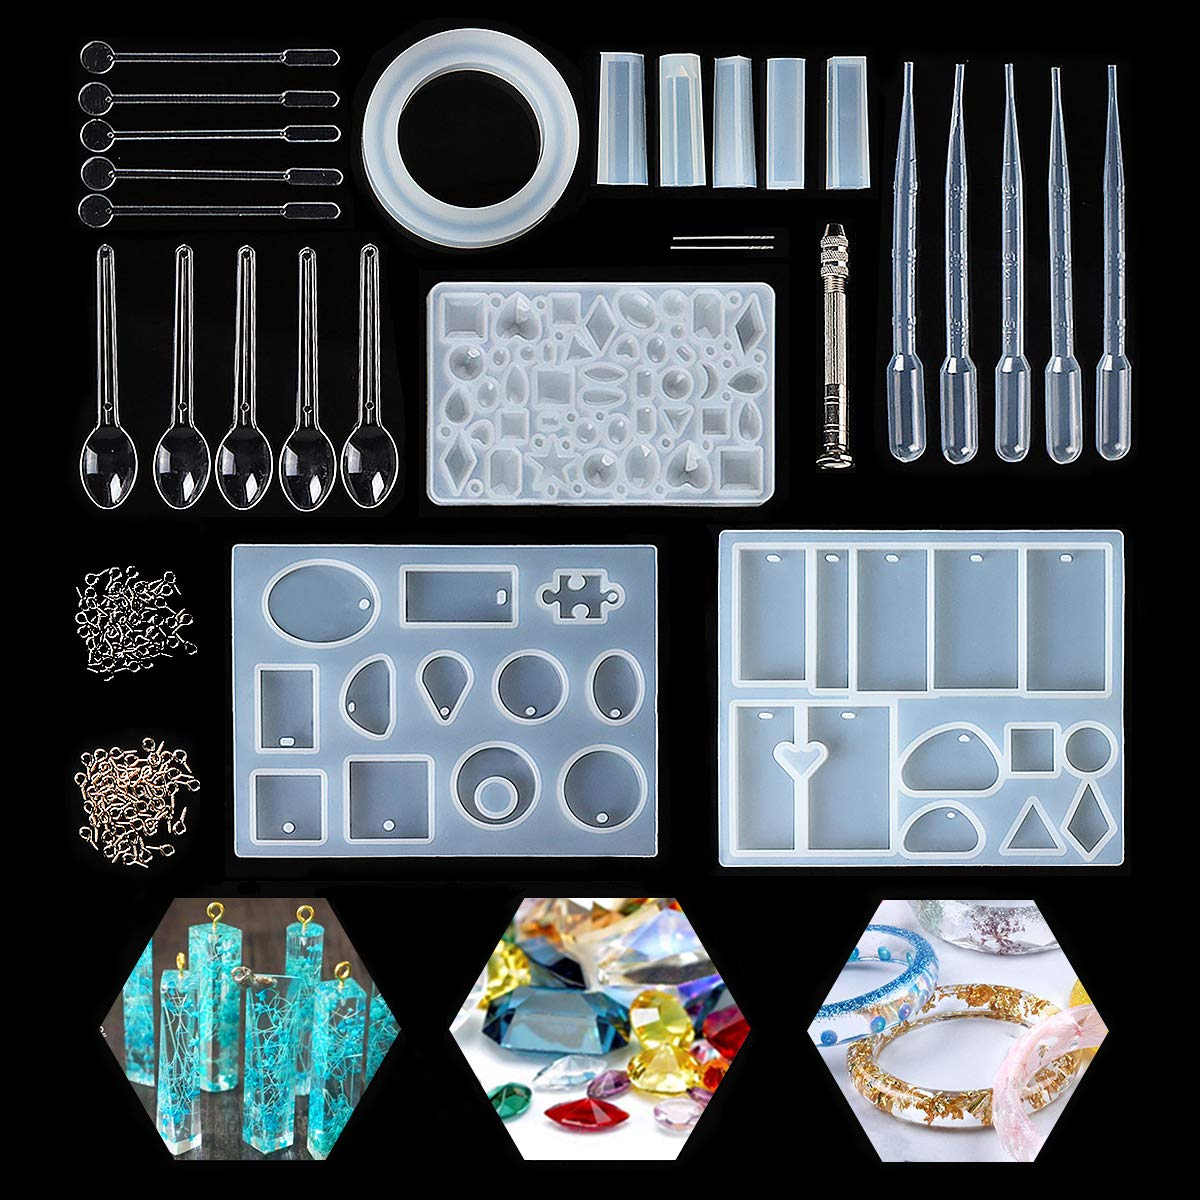 Resin Casting Molds Kits Silicone Mold Making Jewelry Pendant Mould Craft DIY